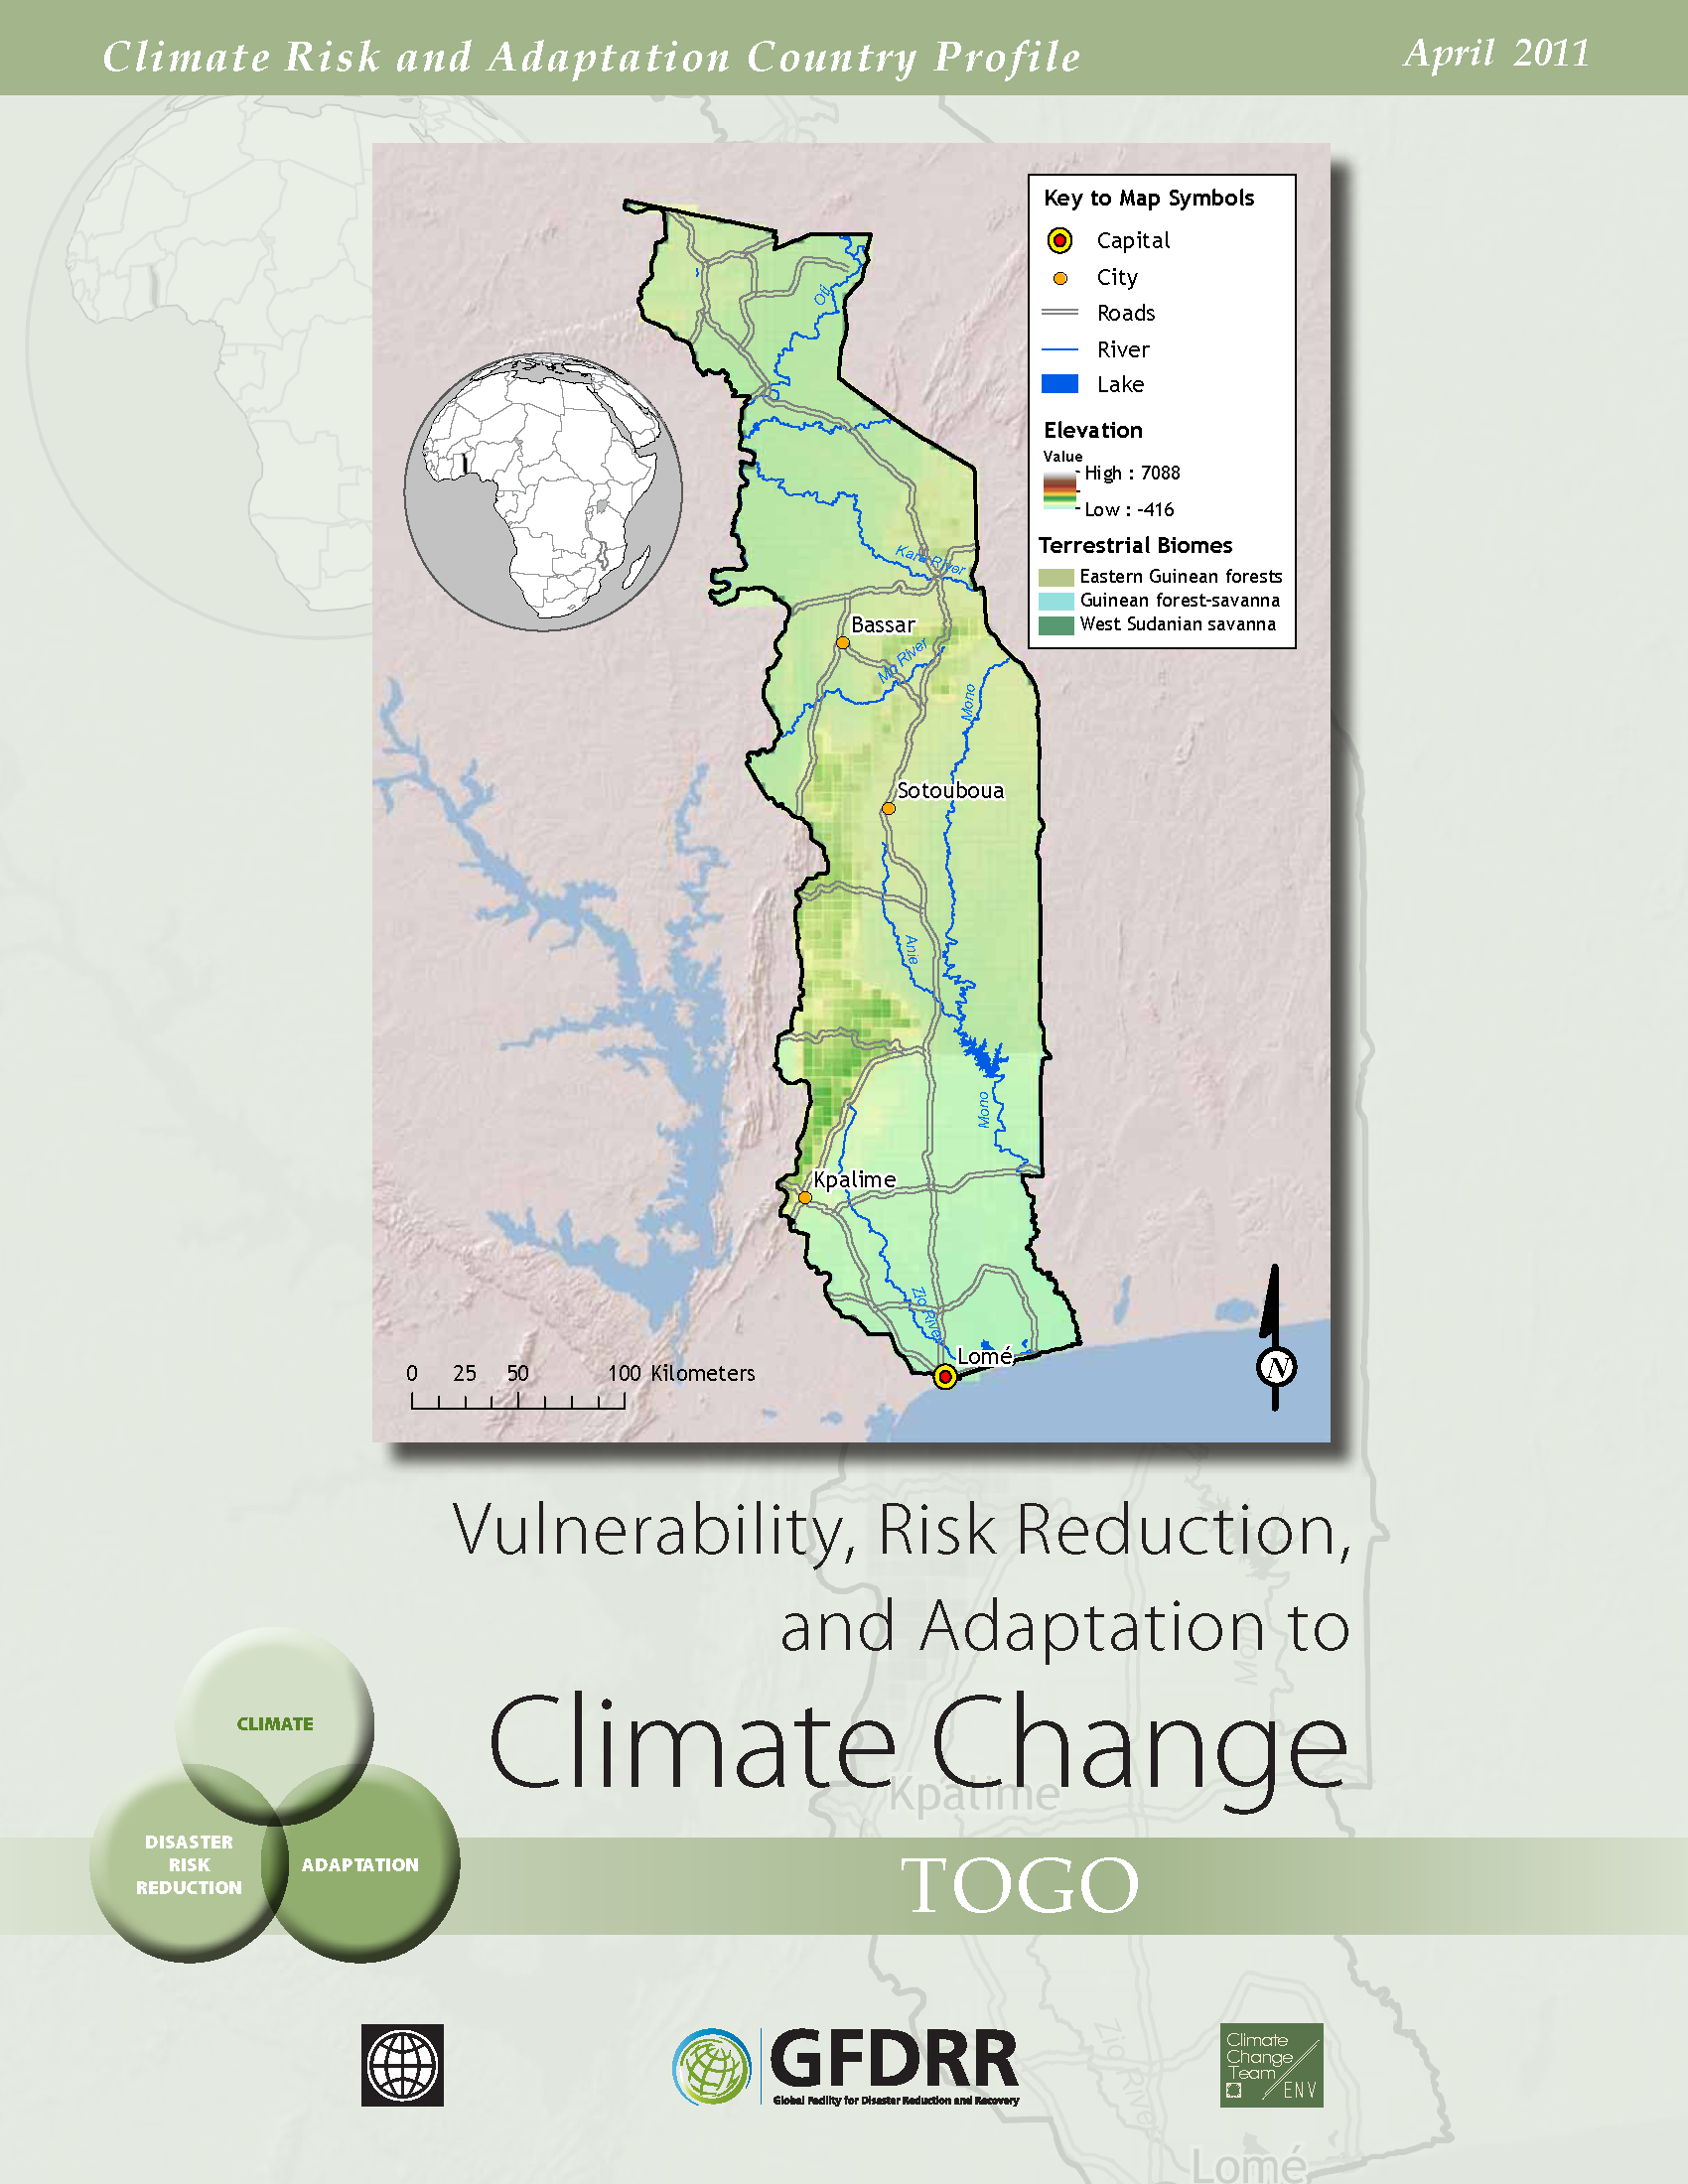 Climate Risk and Adaptation Country Profile: Togo